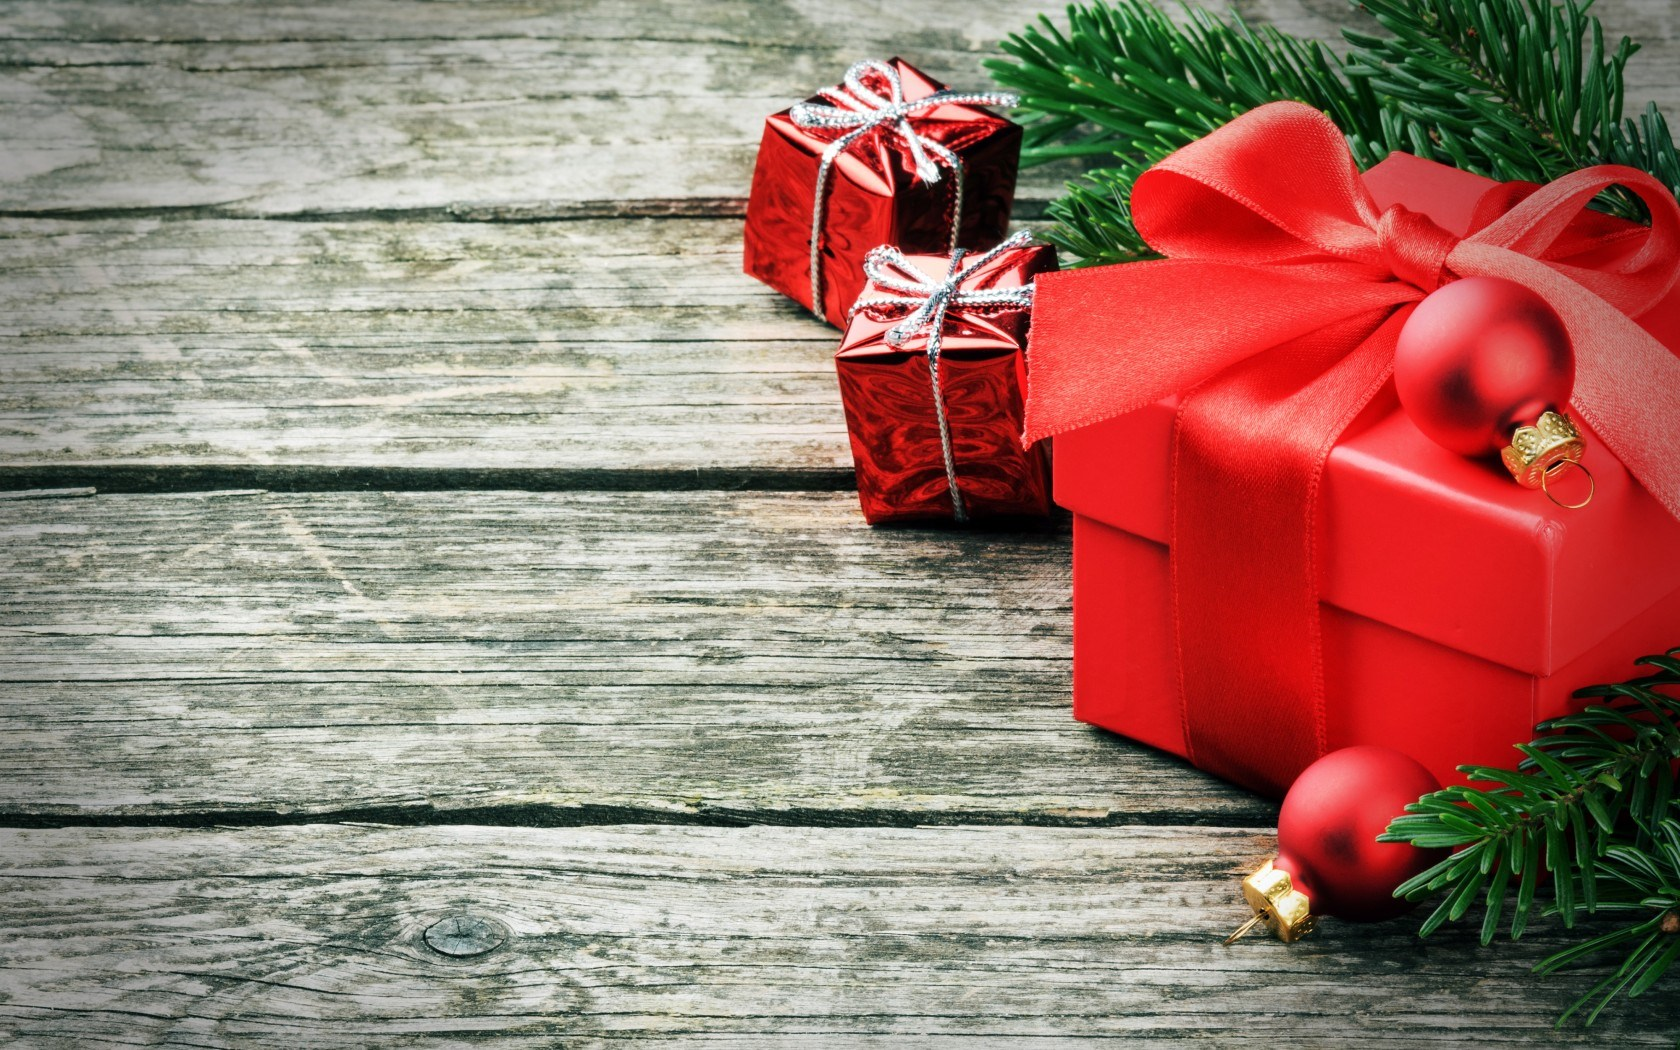 Download New Year Christmas Winter Holiday Gifts wallpaper in Holiday 1680x1050